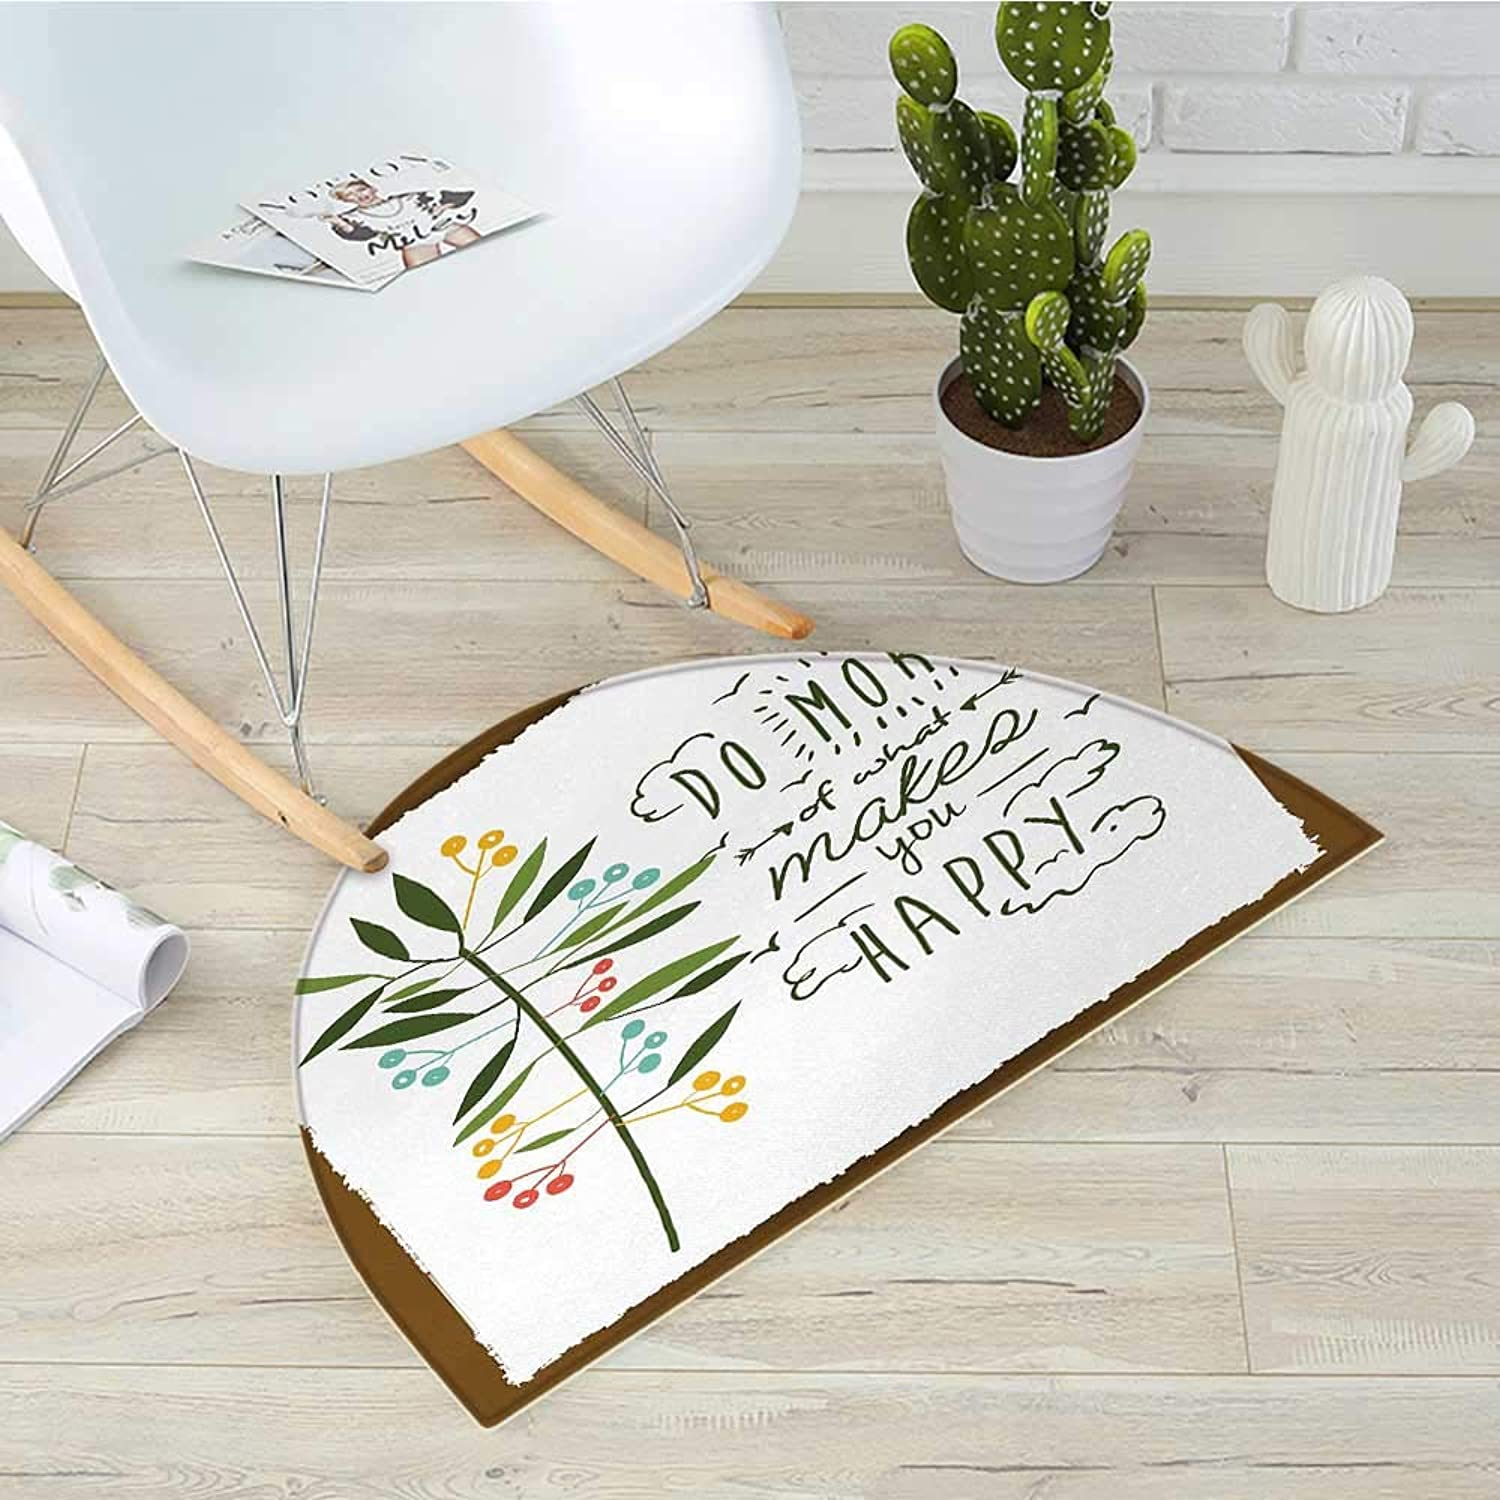 Quotes Semicircular CushionProgress Ideas Design Ideology Mindfulness Olive Fruits Flying Birds Leaf Entry Door Mat H 31.5  xD 47.2  Forest Green Brown